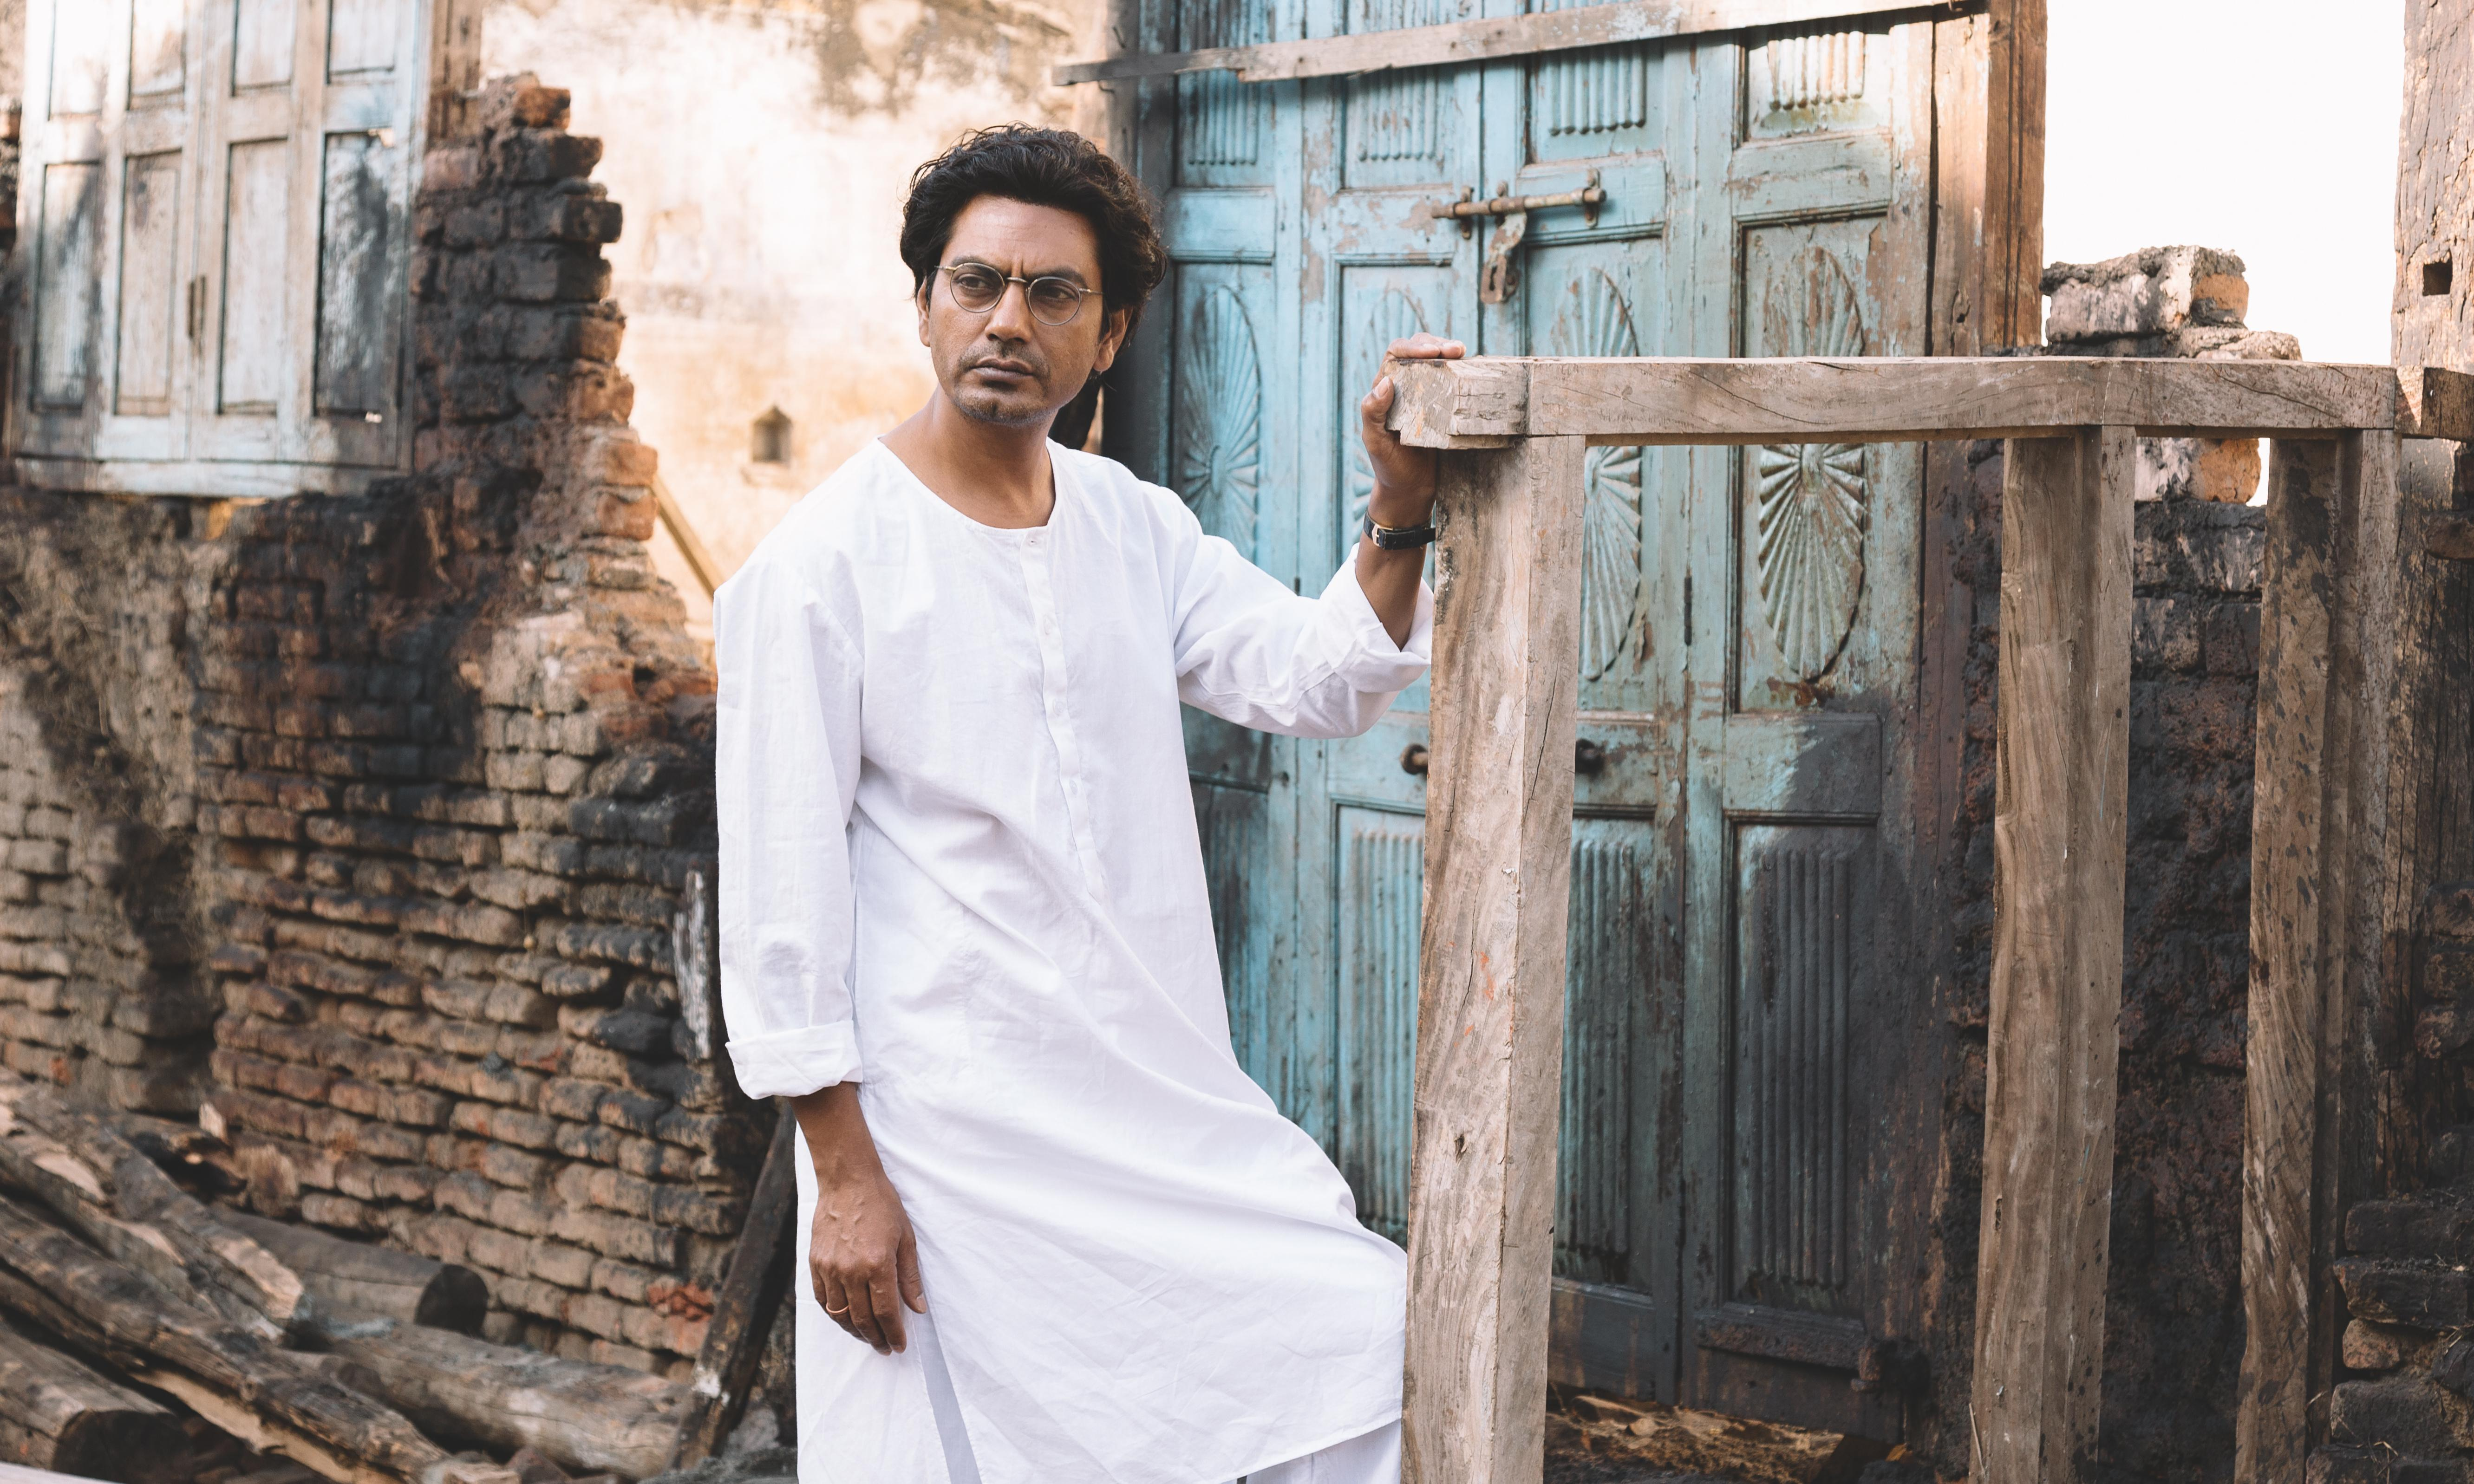 Manto: the writer who felt the pain of India's partition